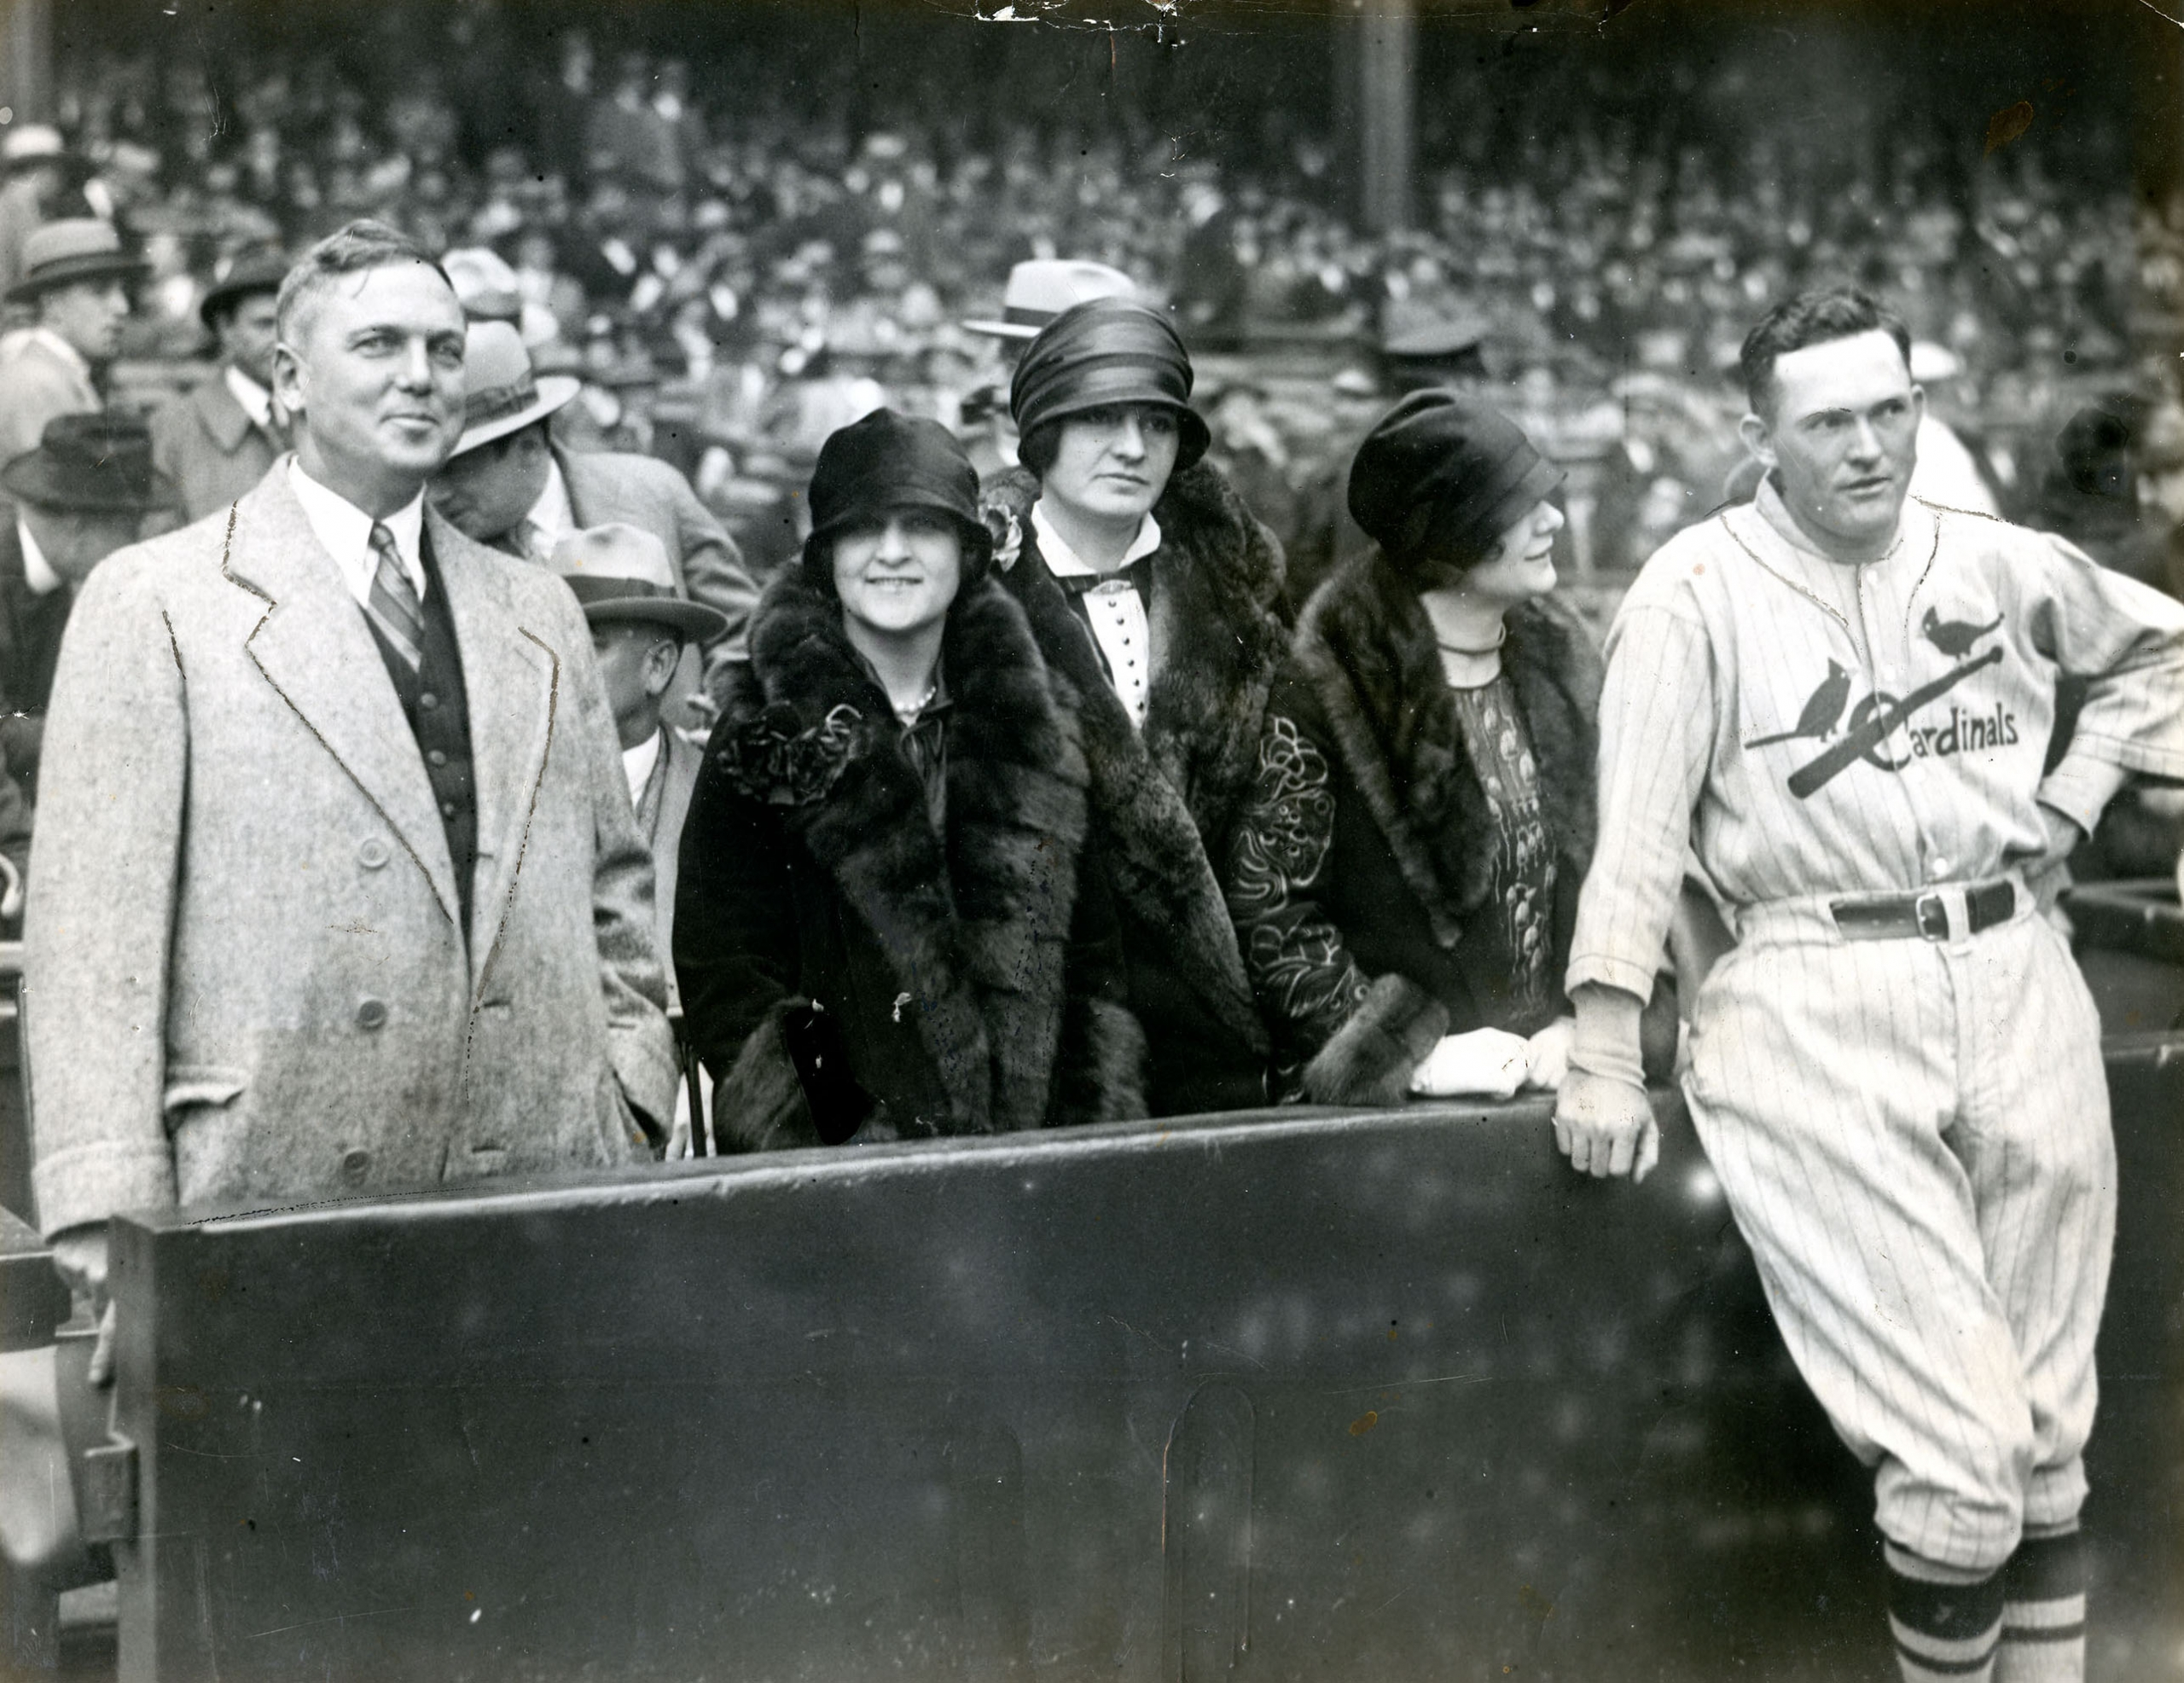 St. Louis Cardinals owner Sam Breadon, far left, and manager Rogers Hornsby, far right, pose for a photo before Game One of the 1926 World Series at Yankee Stadium. Also pictured are, from left: Mrs. William Niekamp, Rachel Breadon, and Jeanette Hornsby. (SABR-OTTOSON PHOTO ARCHIVE)